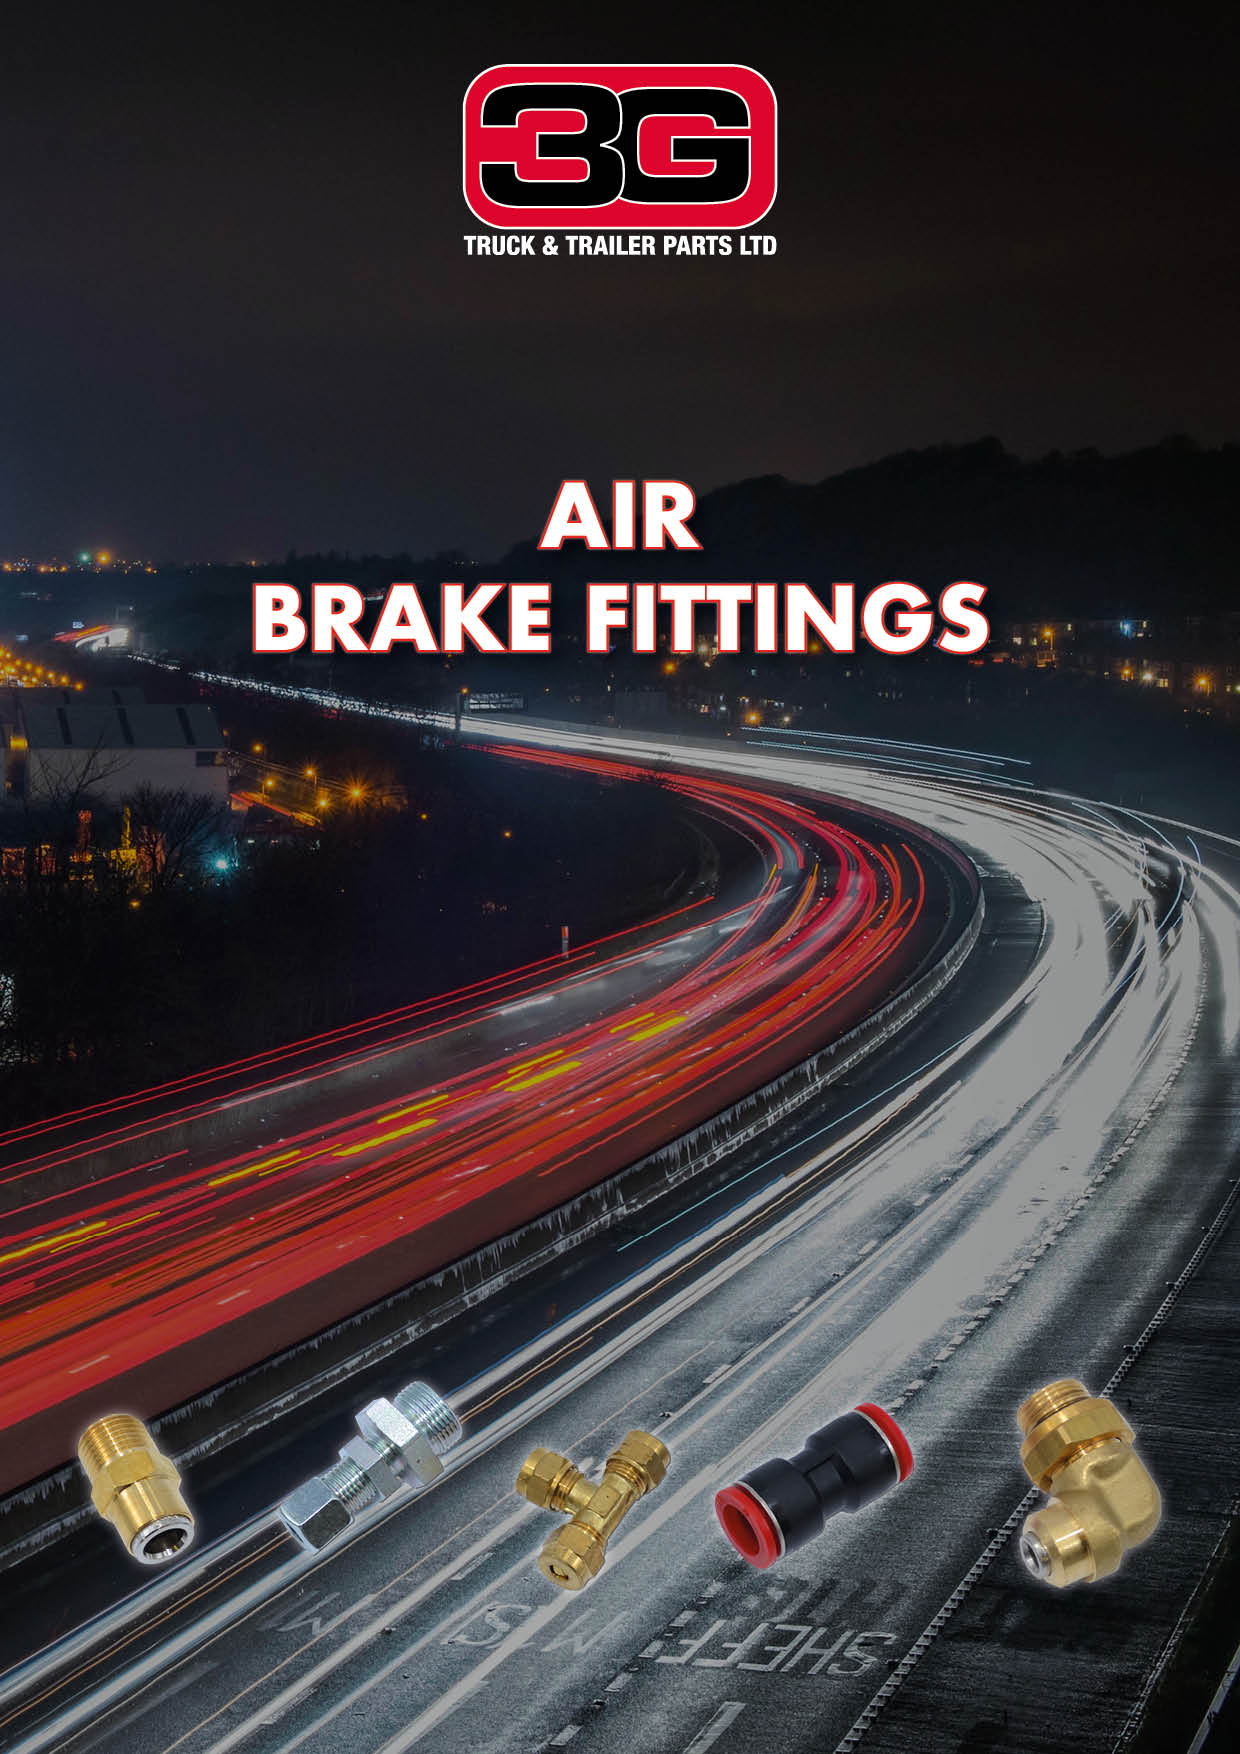 Air Brake Fittings Image coming soon. Click to view full catalogue